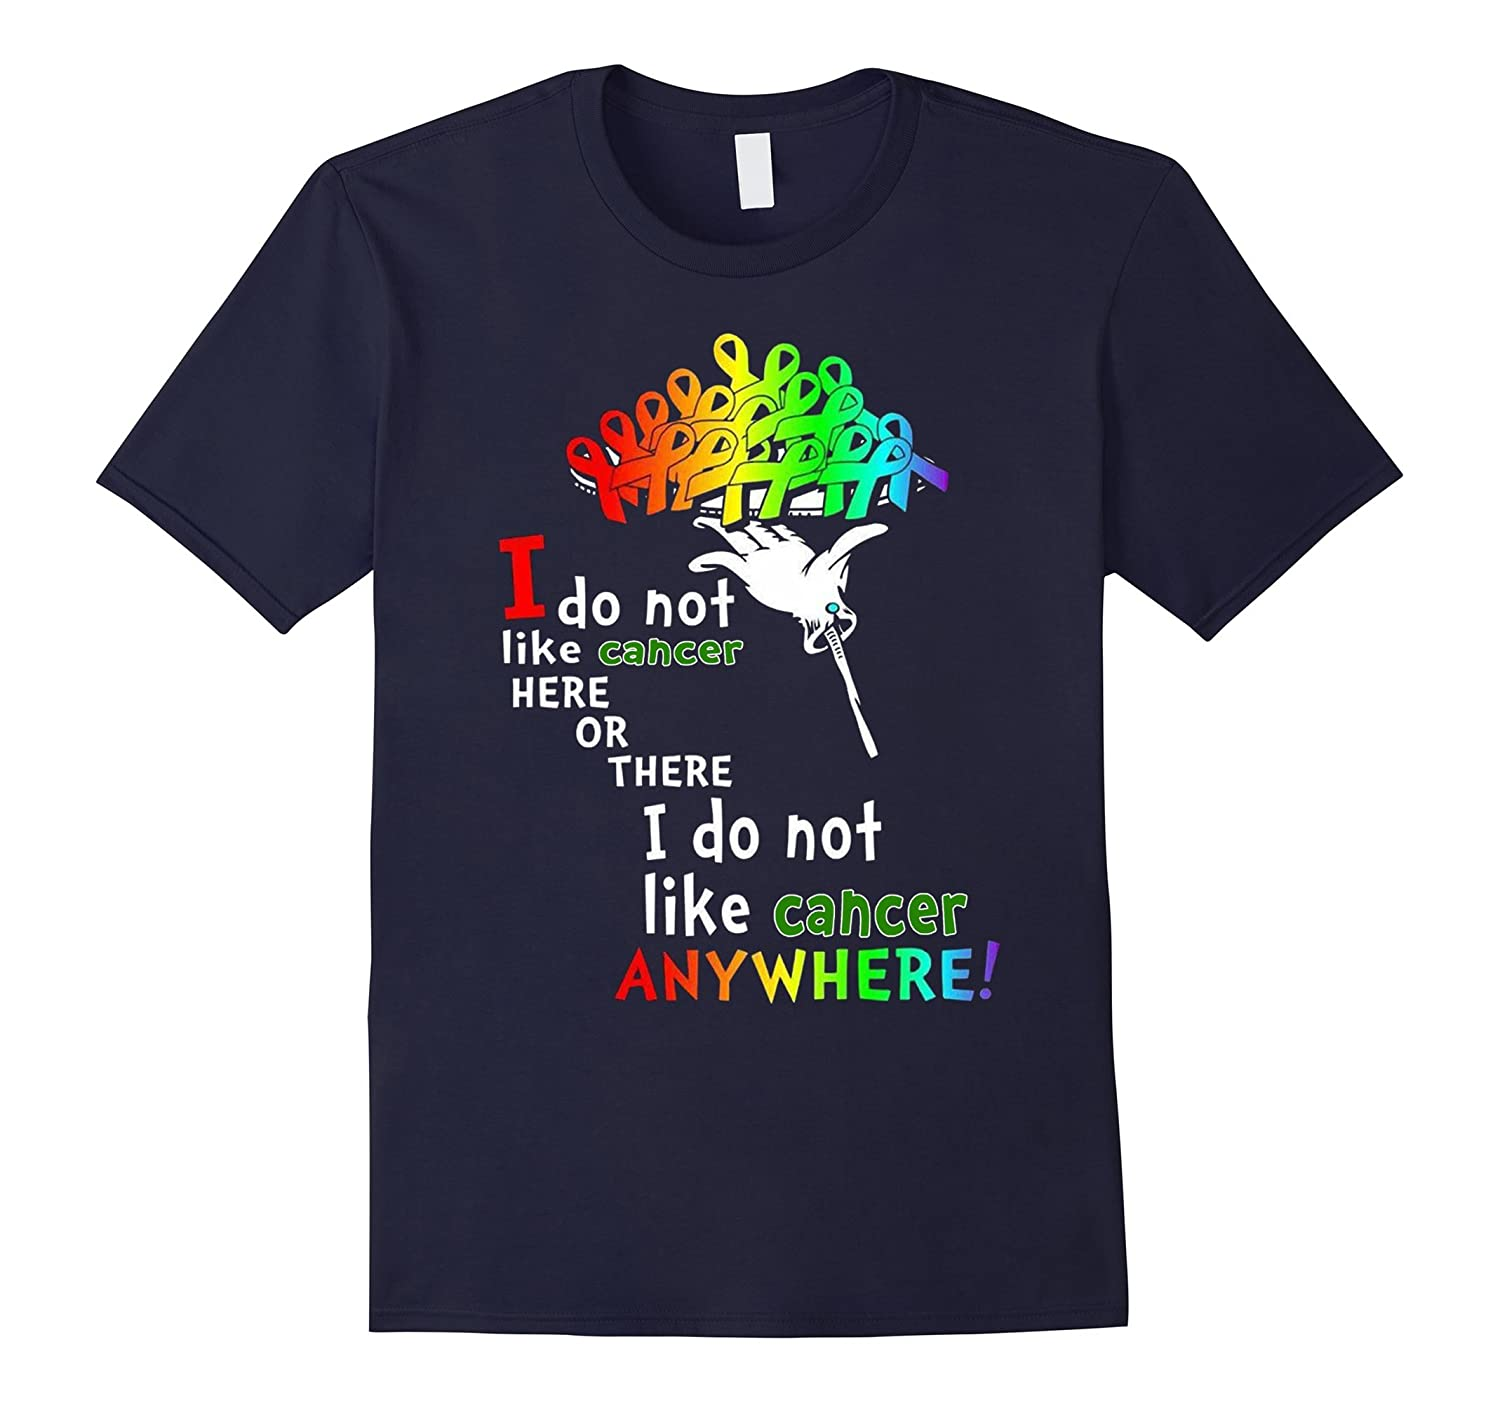 Cancer - I do not like here or there or Anywhere Shirt-T-Shirt